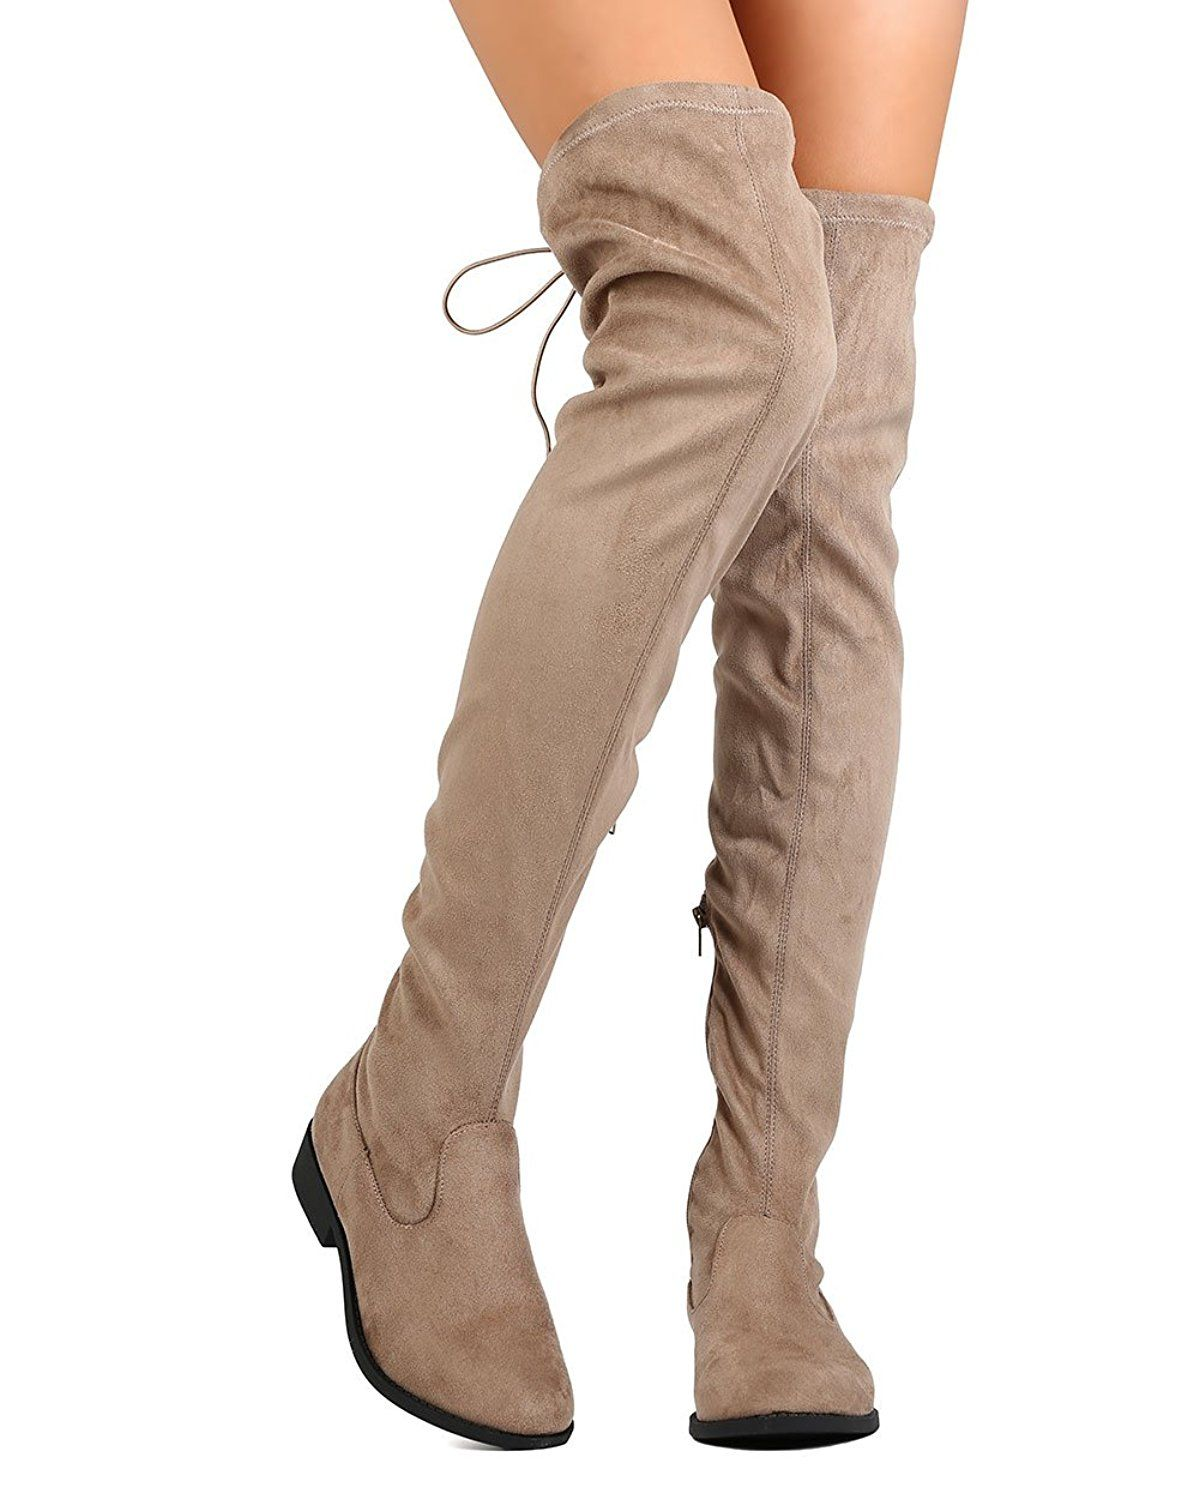 29ceeb009c4 Qupid FC38 Women Faux Suede Thigh High Elastic Back Tie Riding Boot - Taupe      This is an Amazon Affiliate link. To view further for this item